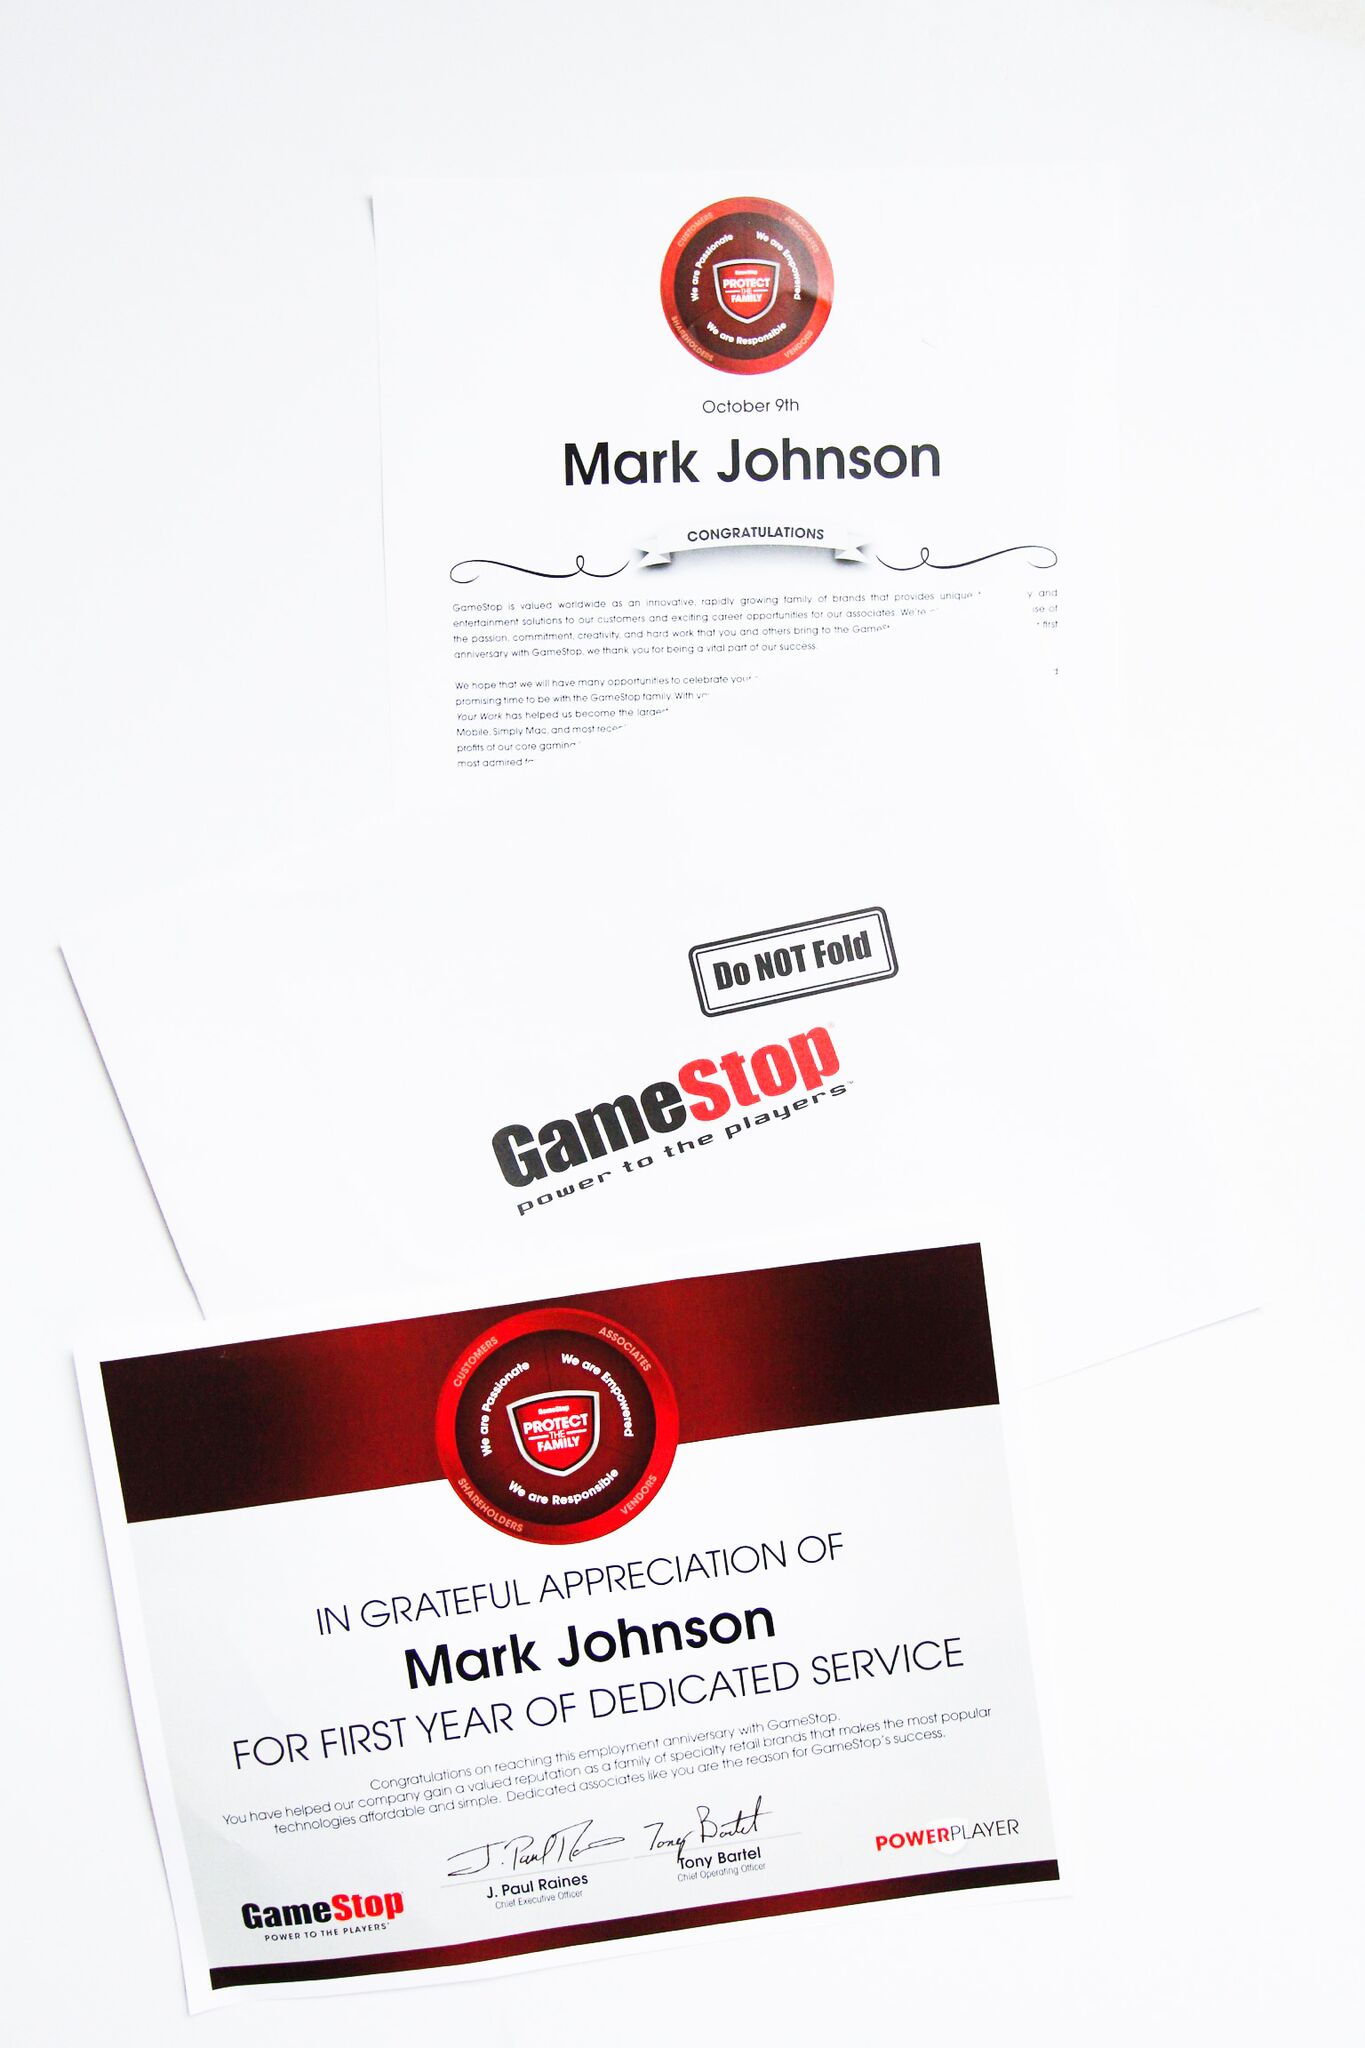 GameStop Power Players Certificates and Letters